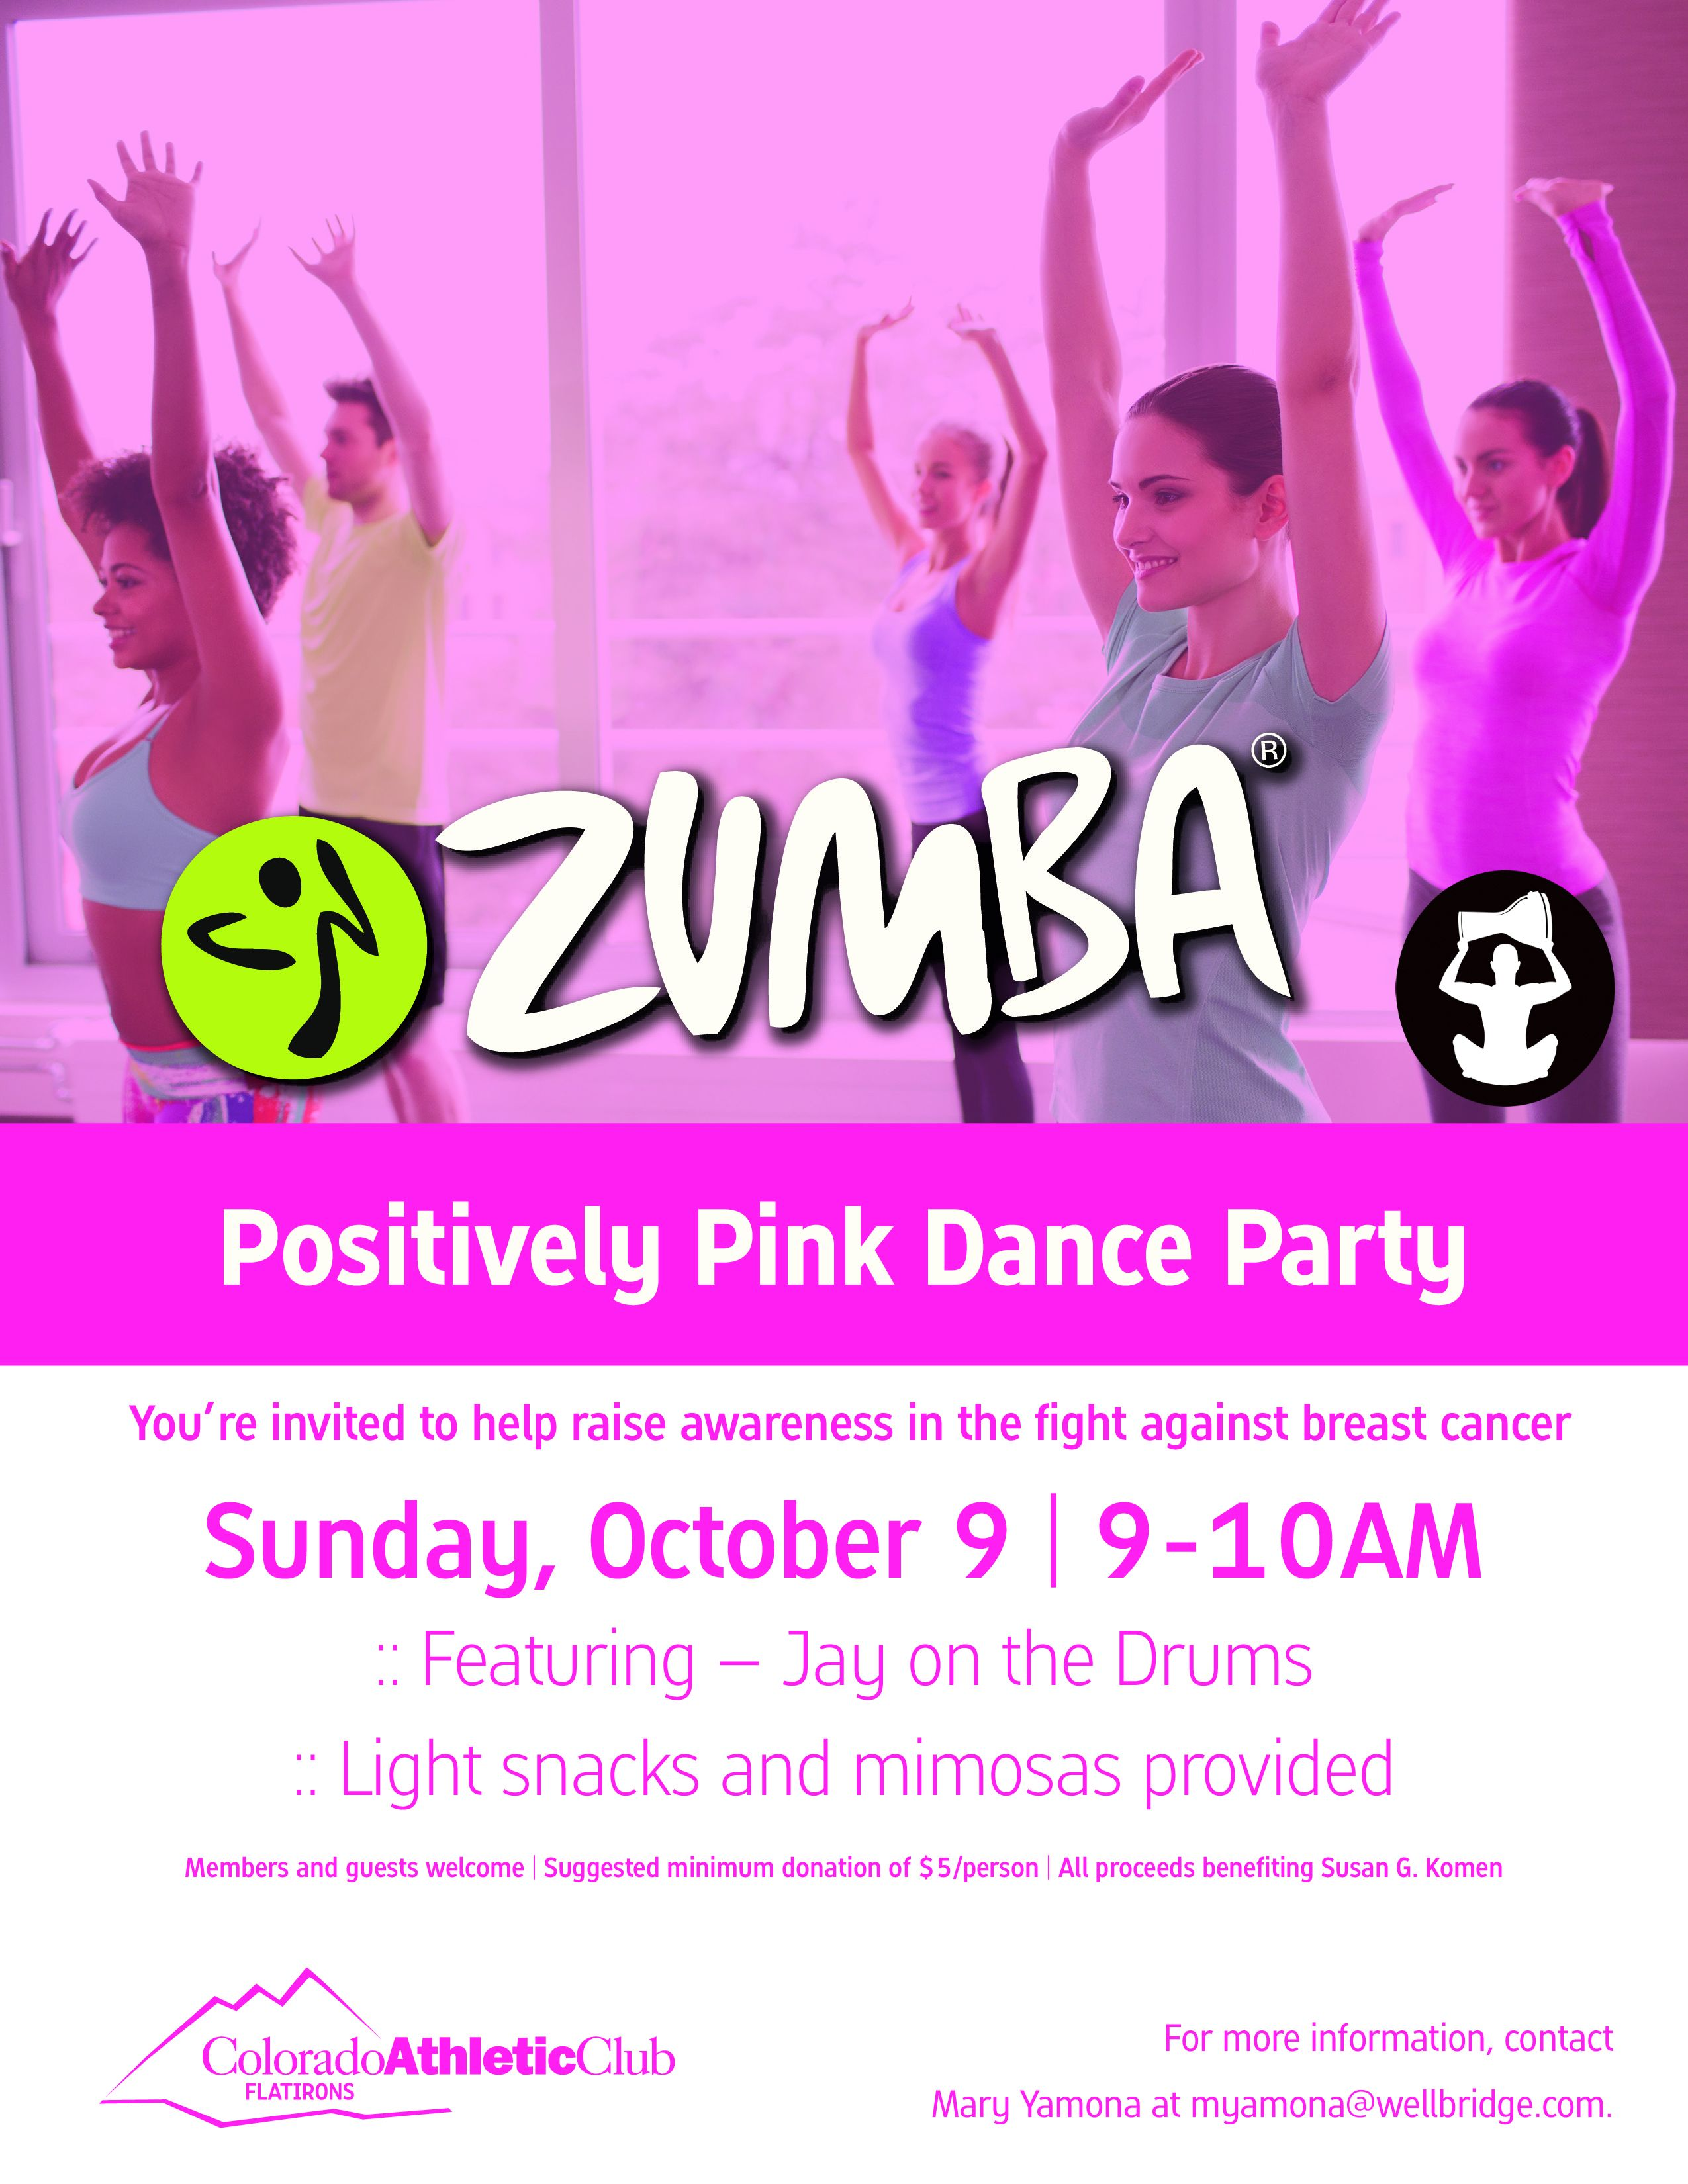 Positively Party In Pink Dance Party Zumba With Live Drums Boulder Co Zumba Dance Party Dance